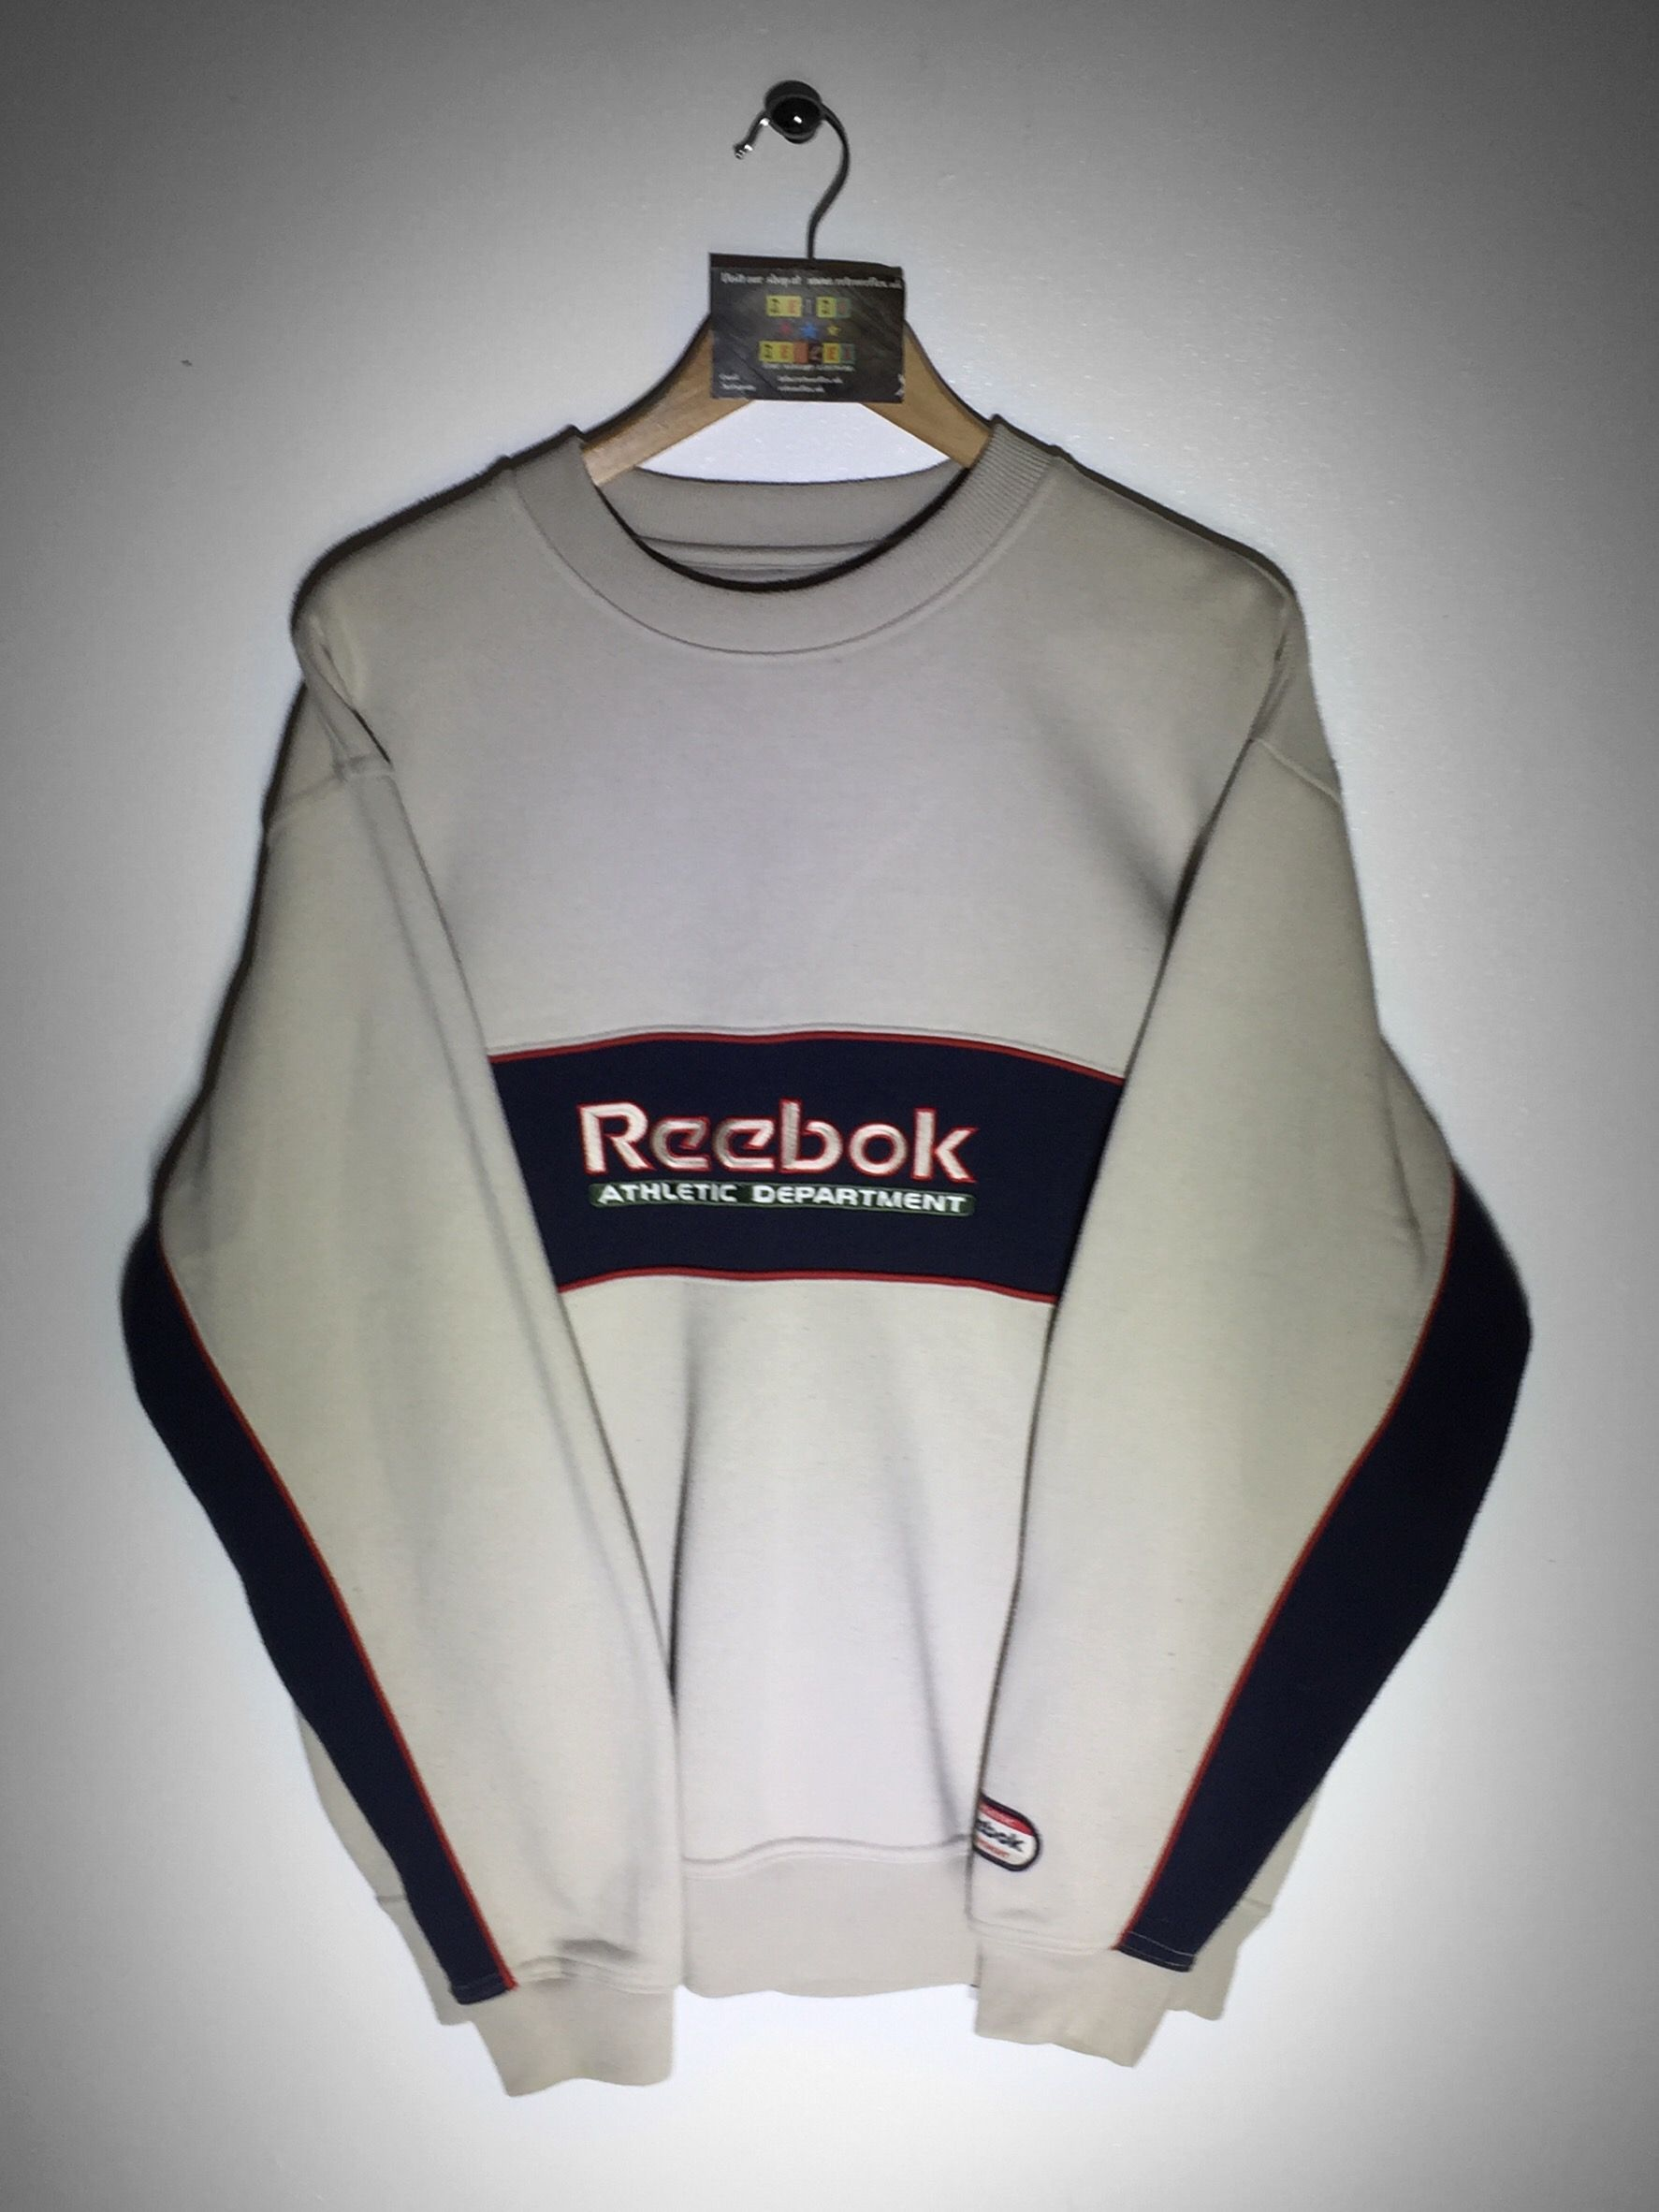 reebok clothing